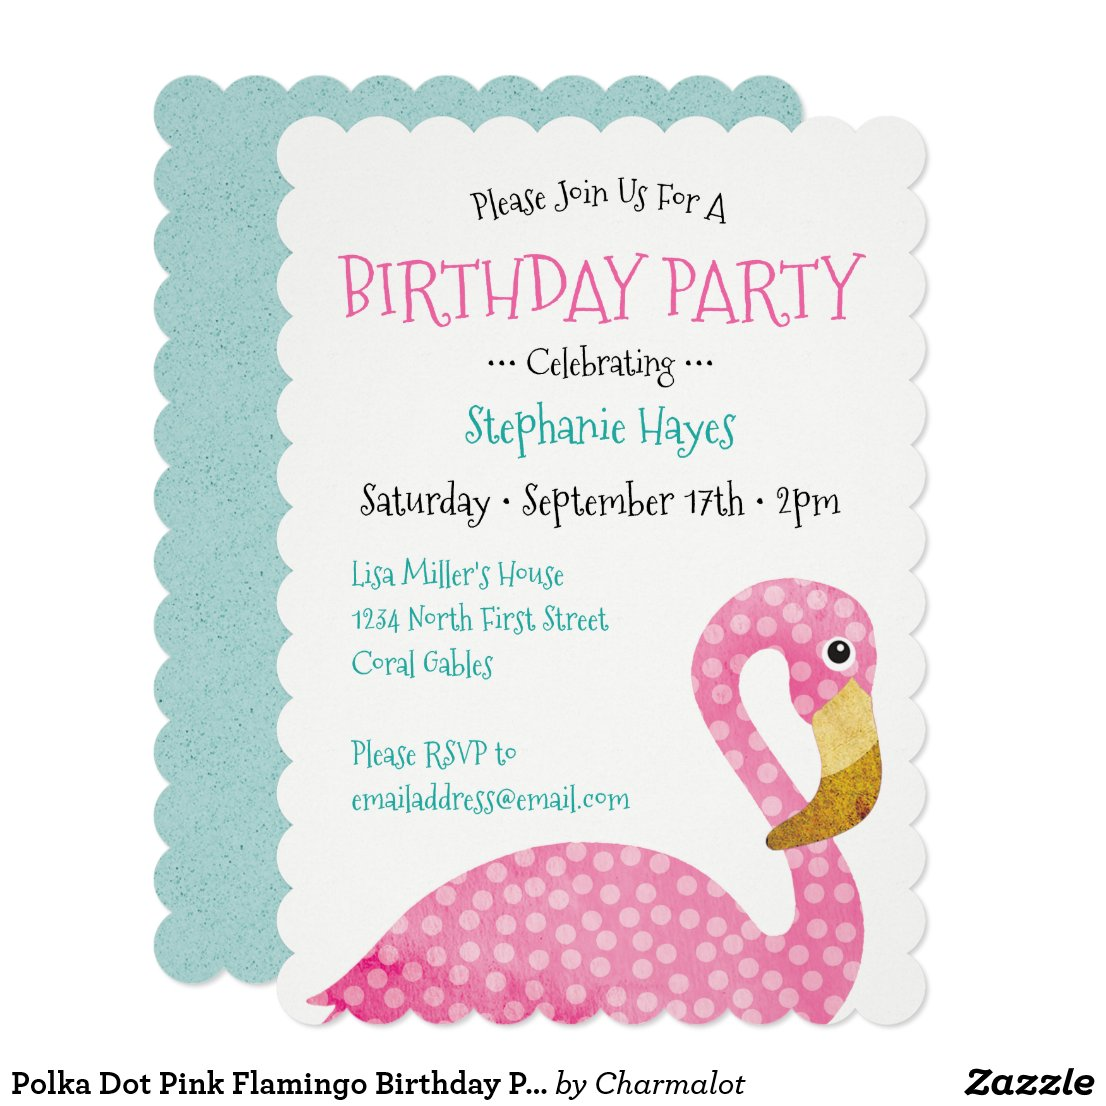 Polka Dot Pink Flamingo Birthday Party Card